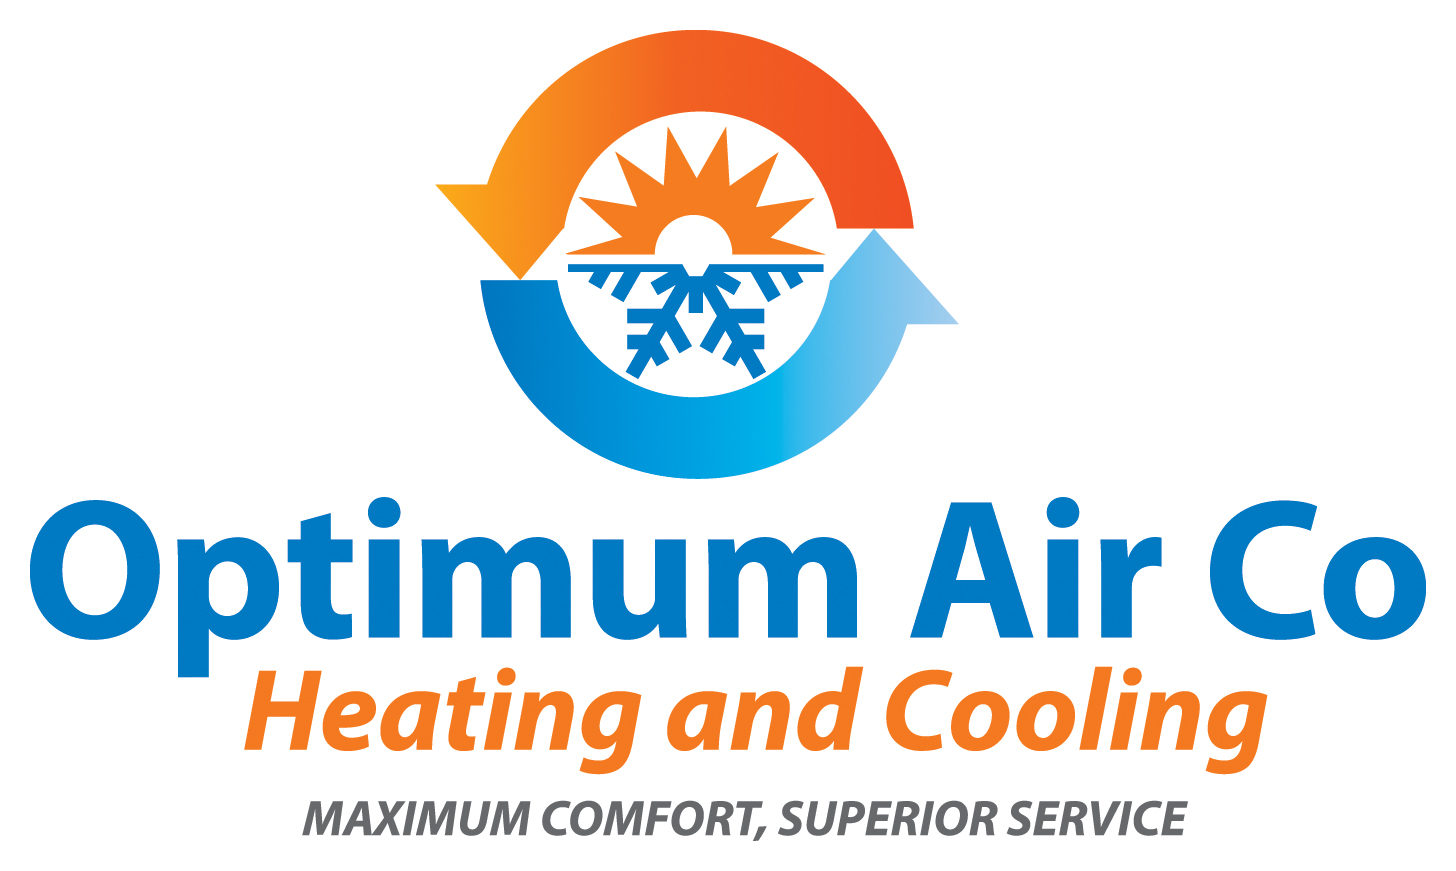 Optimum Air Co.